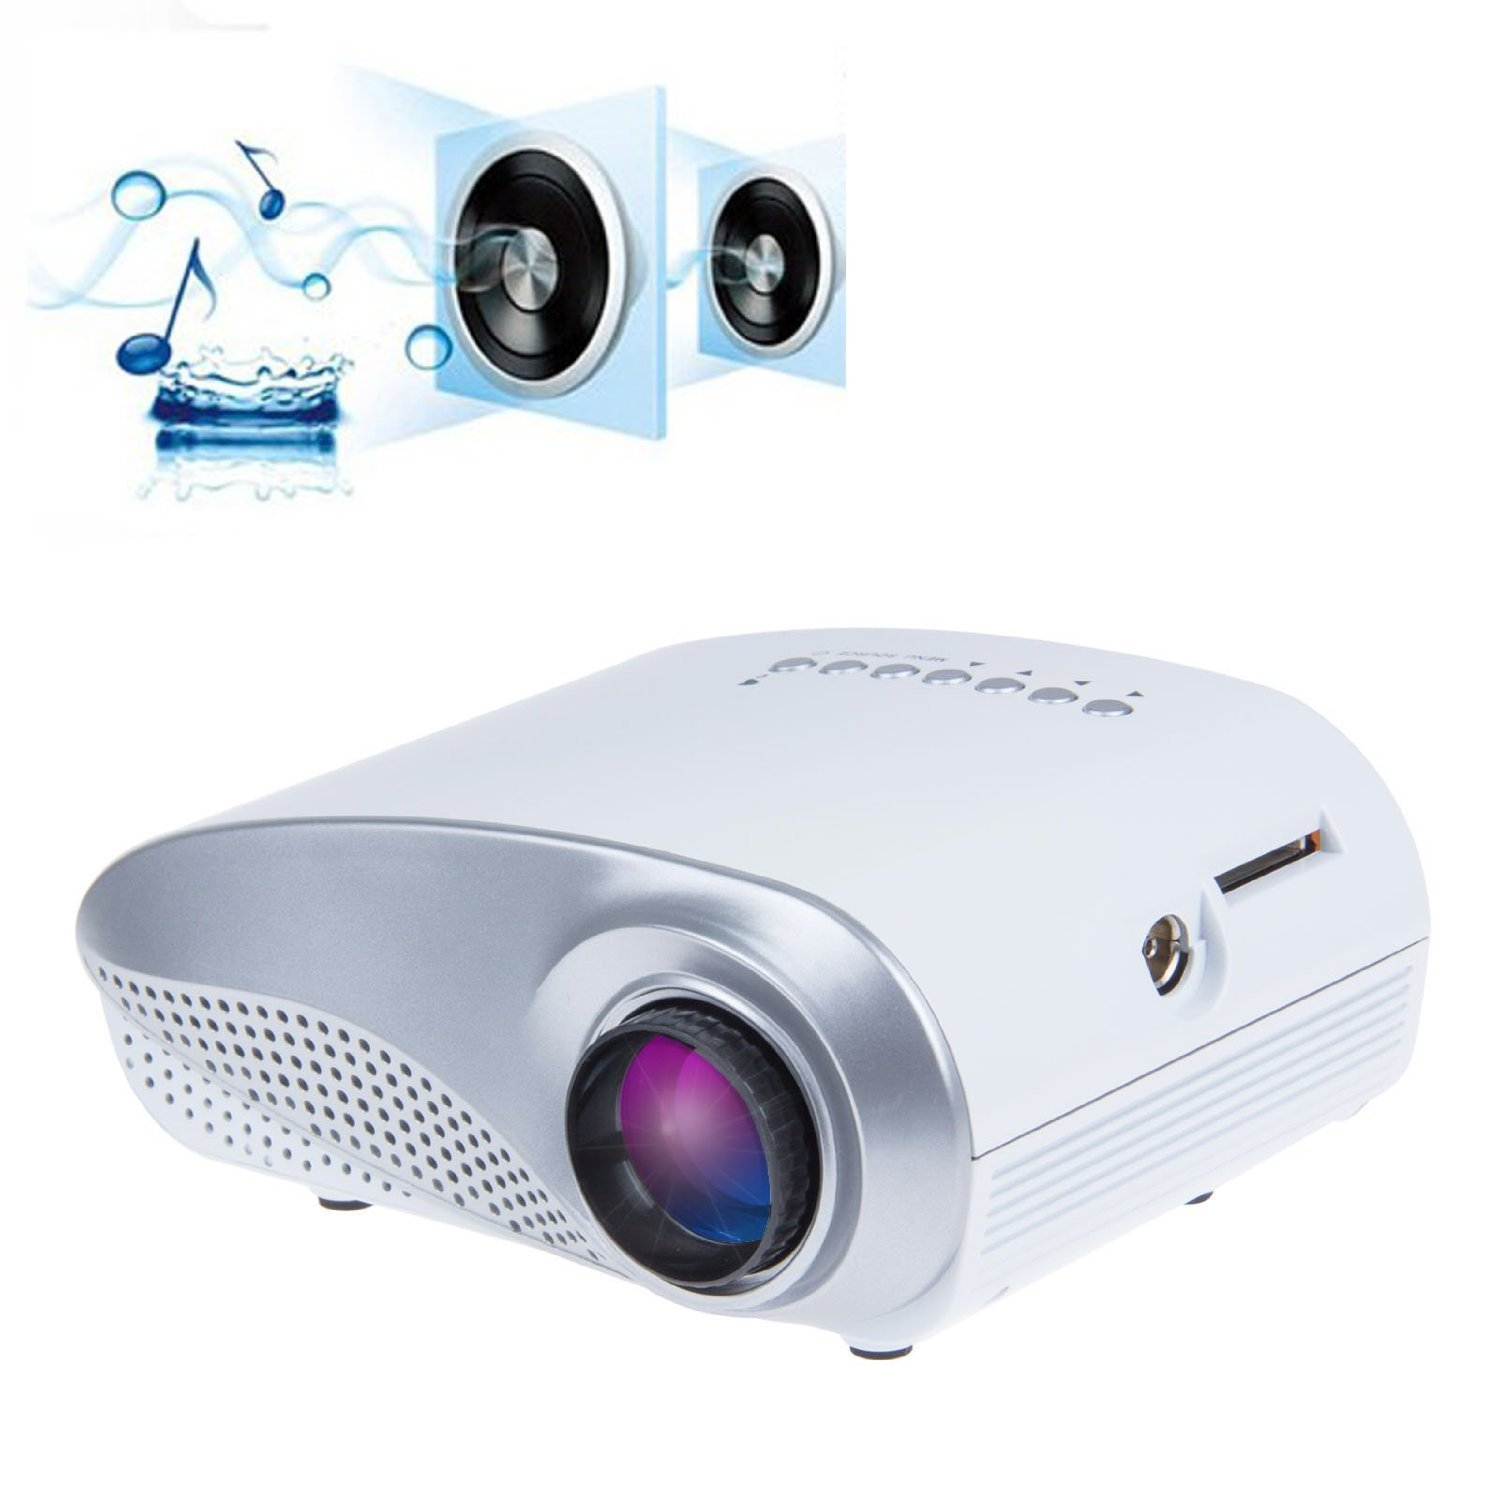 Taotaole Mini Portable Multimedia LED Projector Home Cinema Theater PC VGA USB AV HDMI SD Card